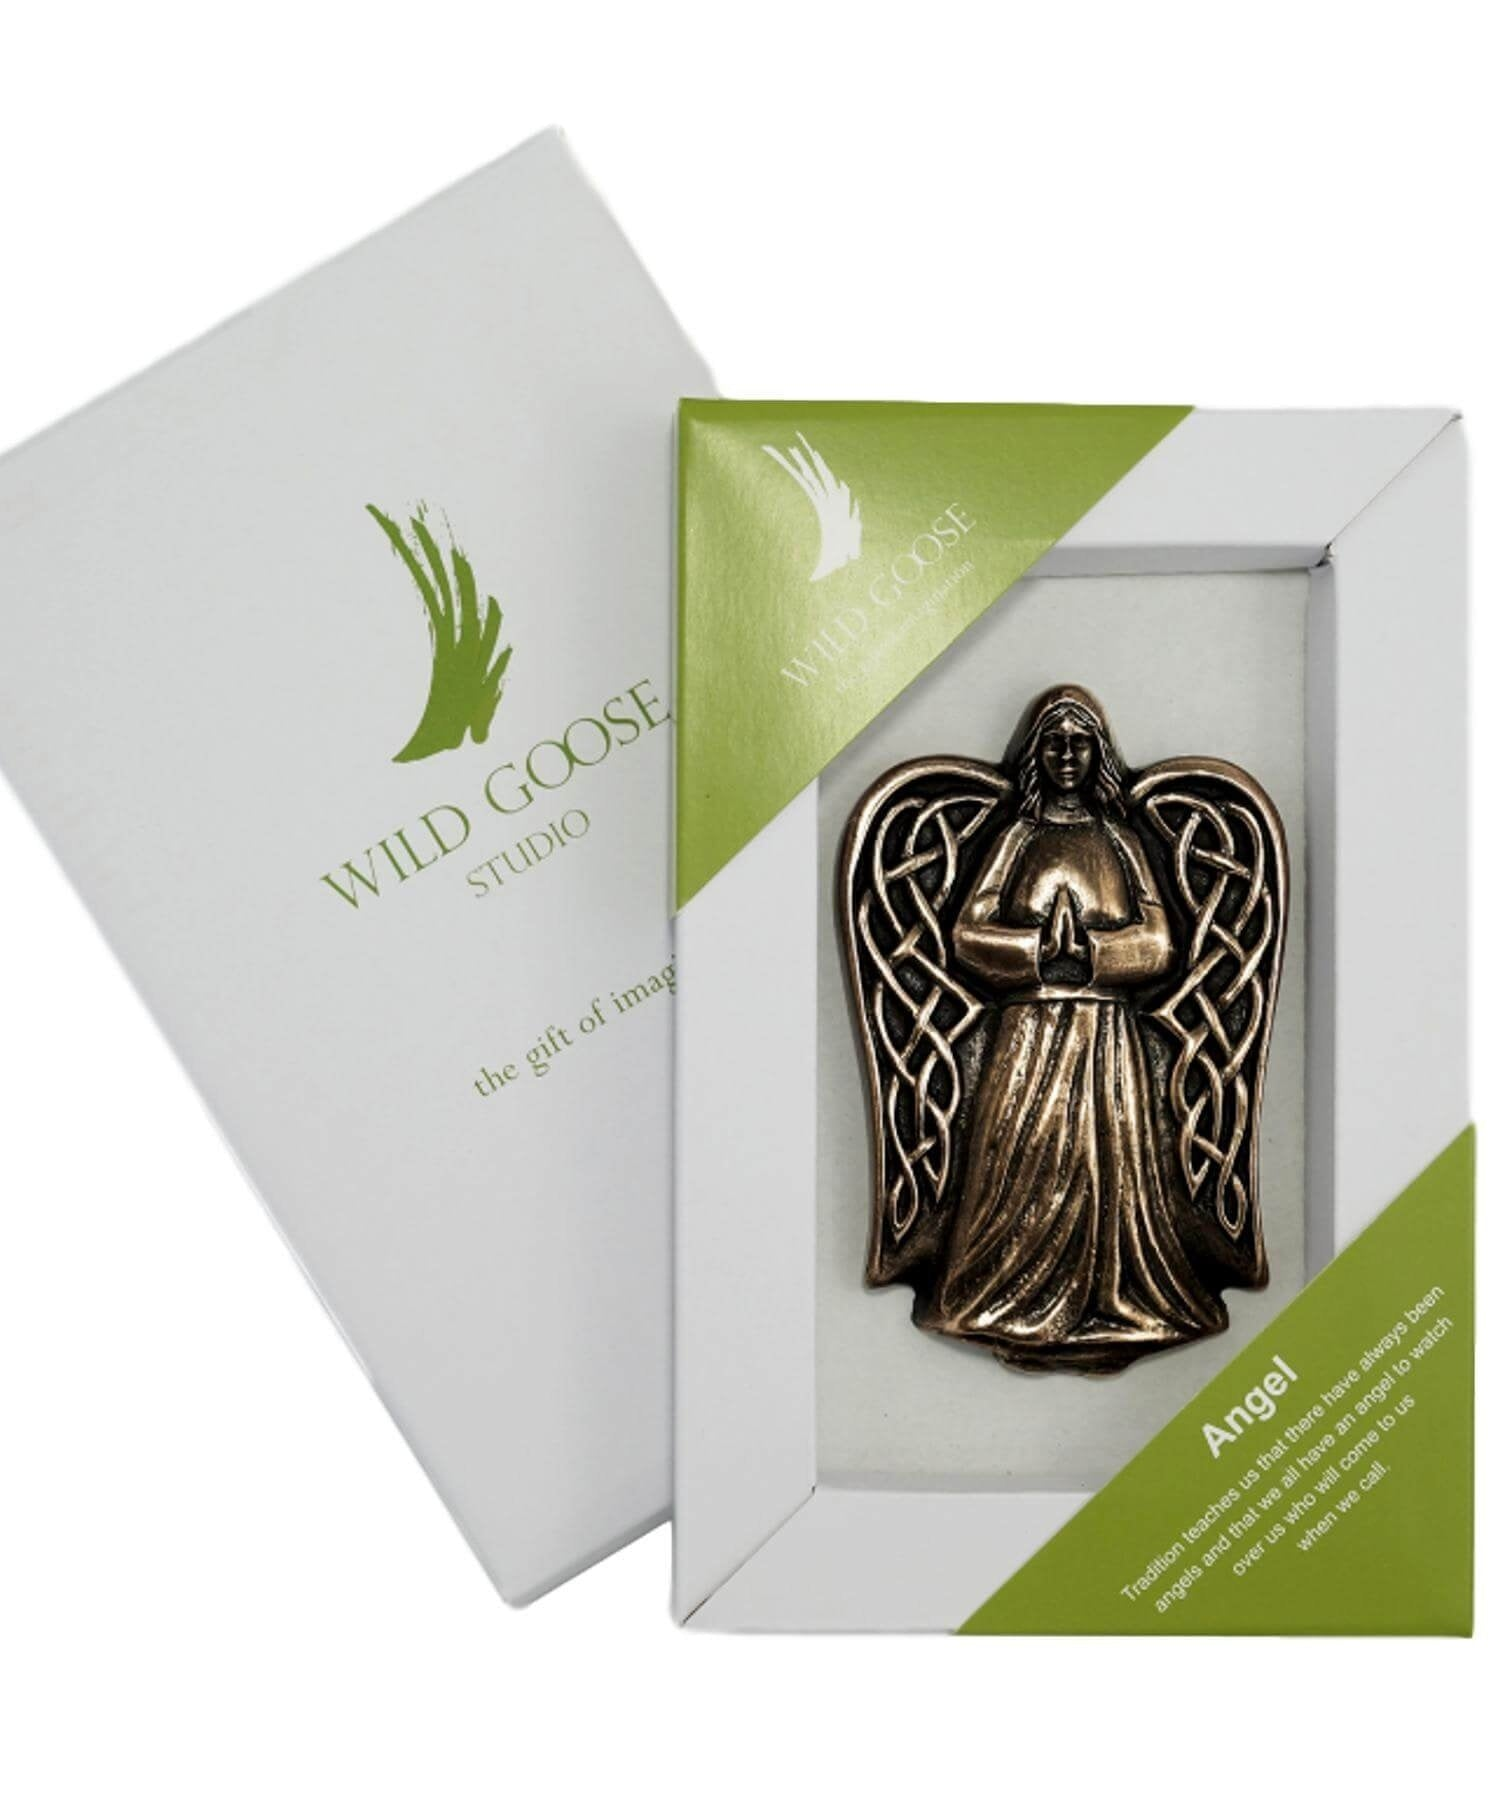 Gift Boxed Emblem - Angel - [Wild Goose] - Wall Art & Photography - Irish Gifts